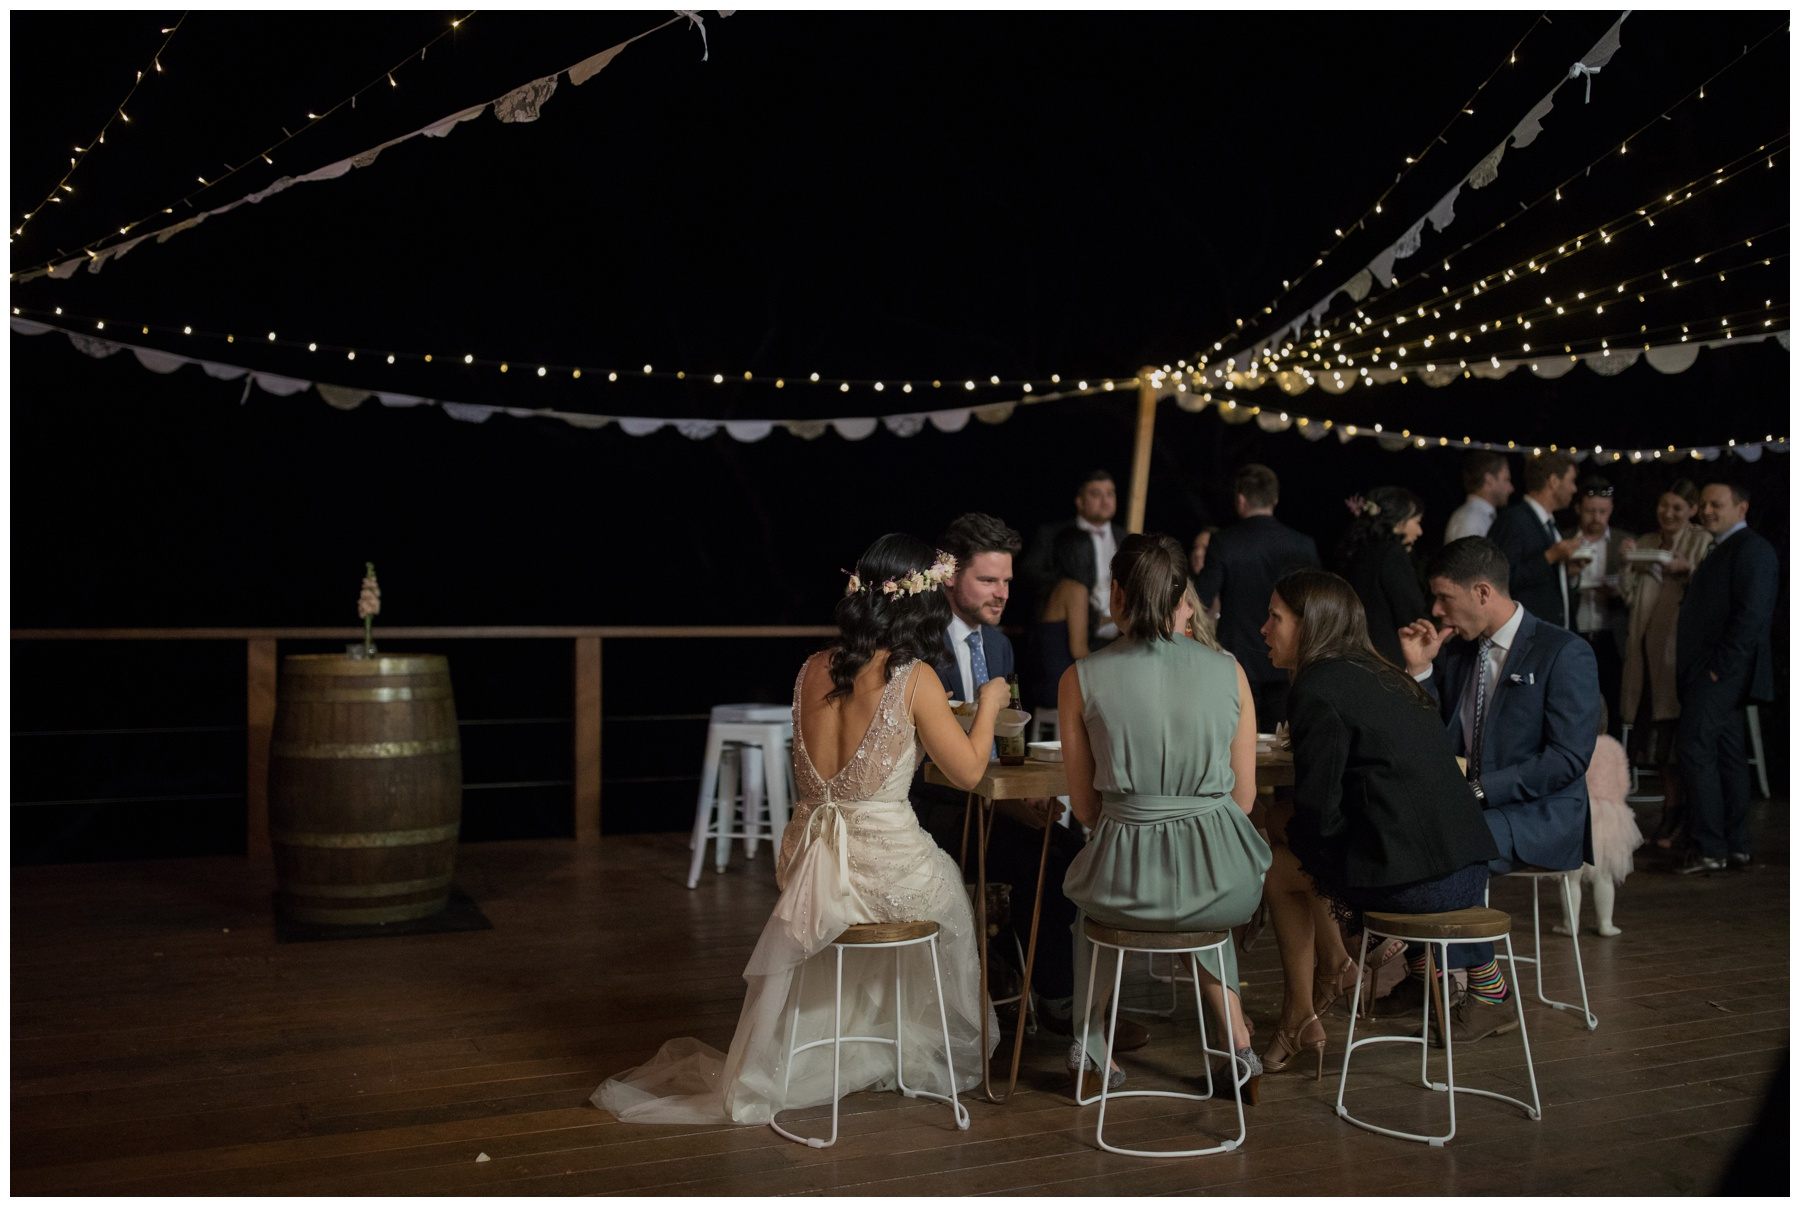 Country Wedding photographer, Nelson Bay wedding, Kangaroo Valley wedding photographer, Southern highlands photographer, alfresco